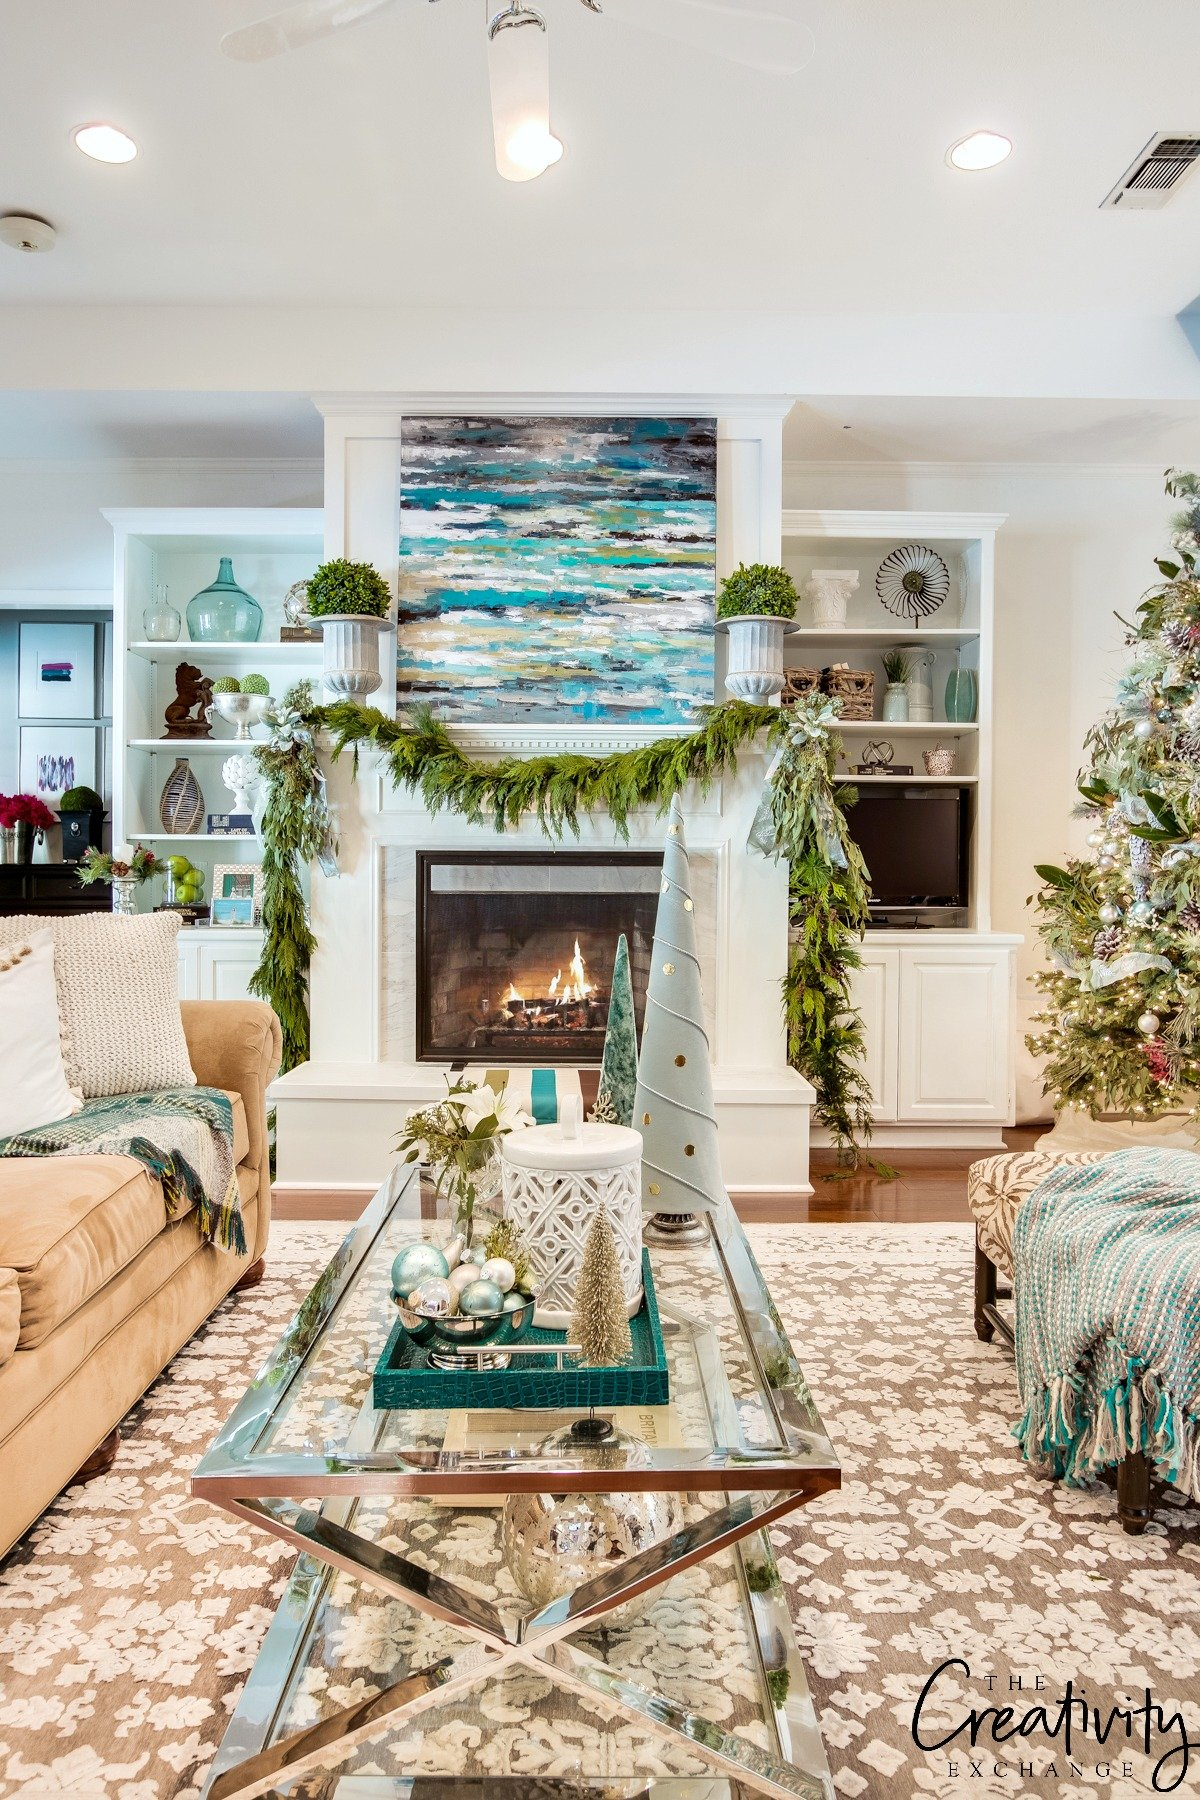 The Creativity Exchange's Christmas Home Tour